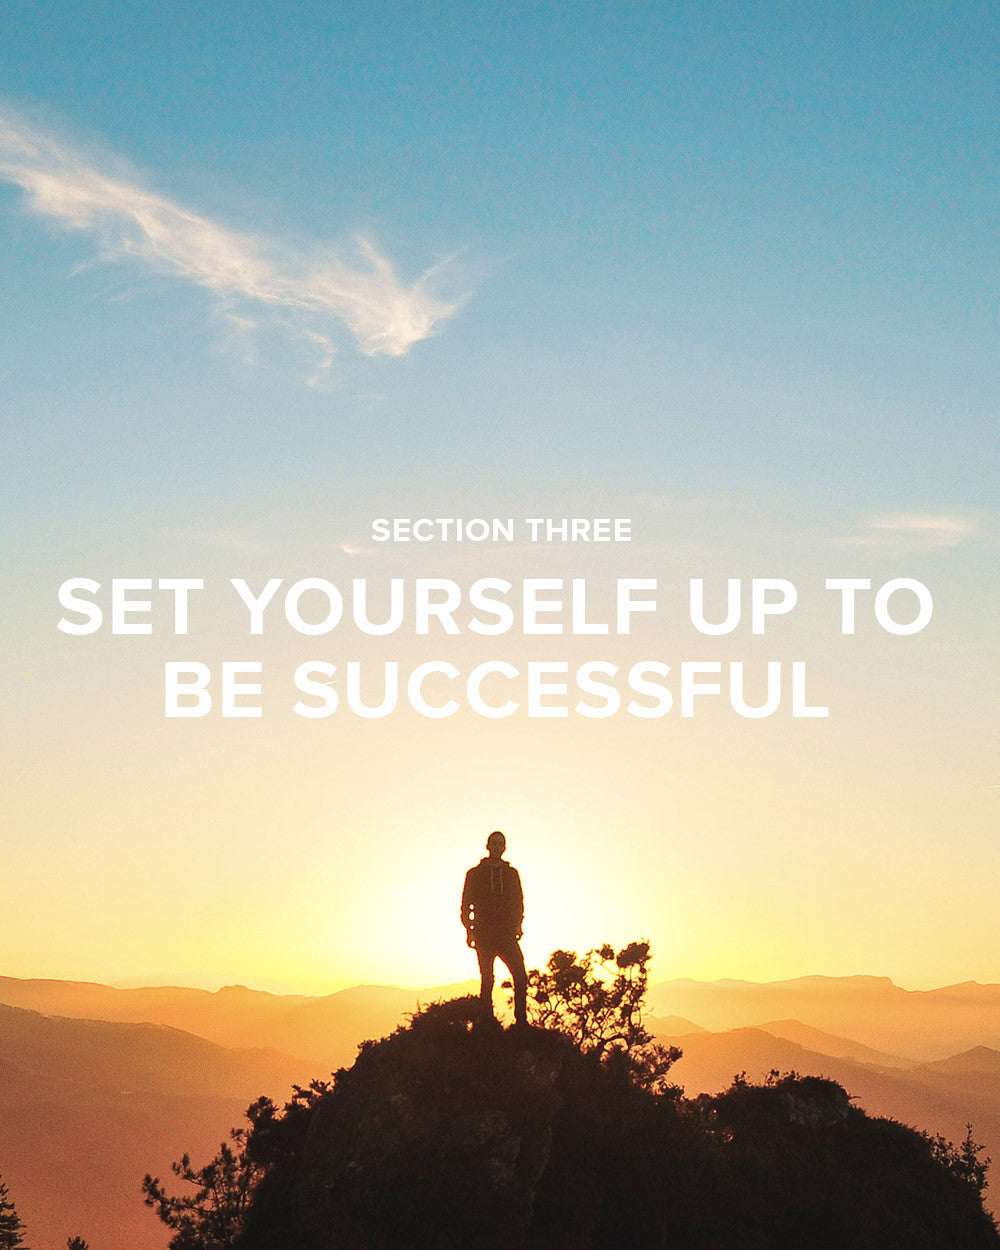 Section 3: Set Yourself Up to Be Successful